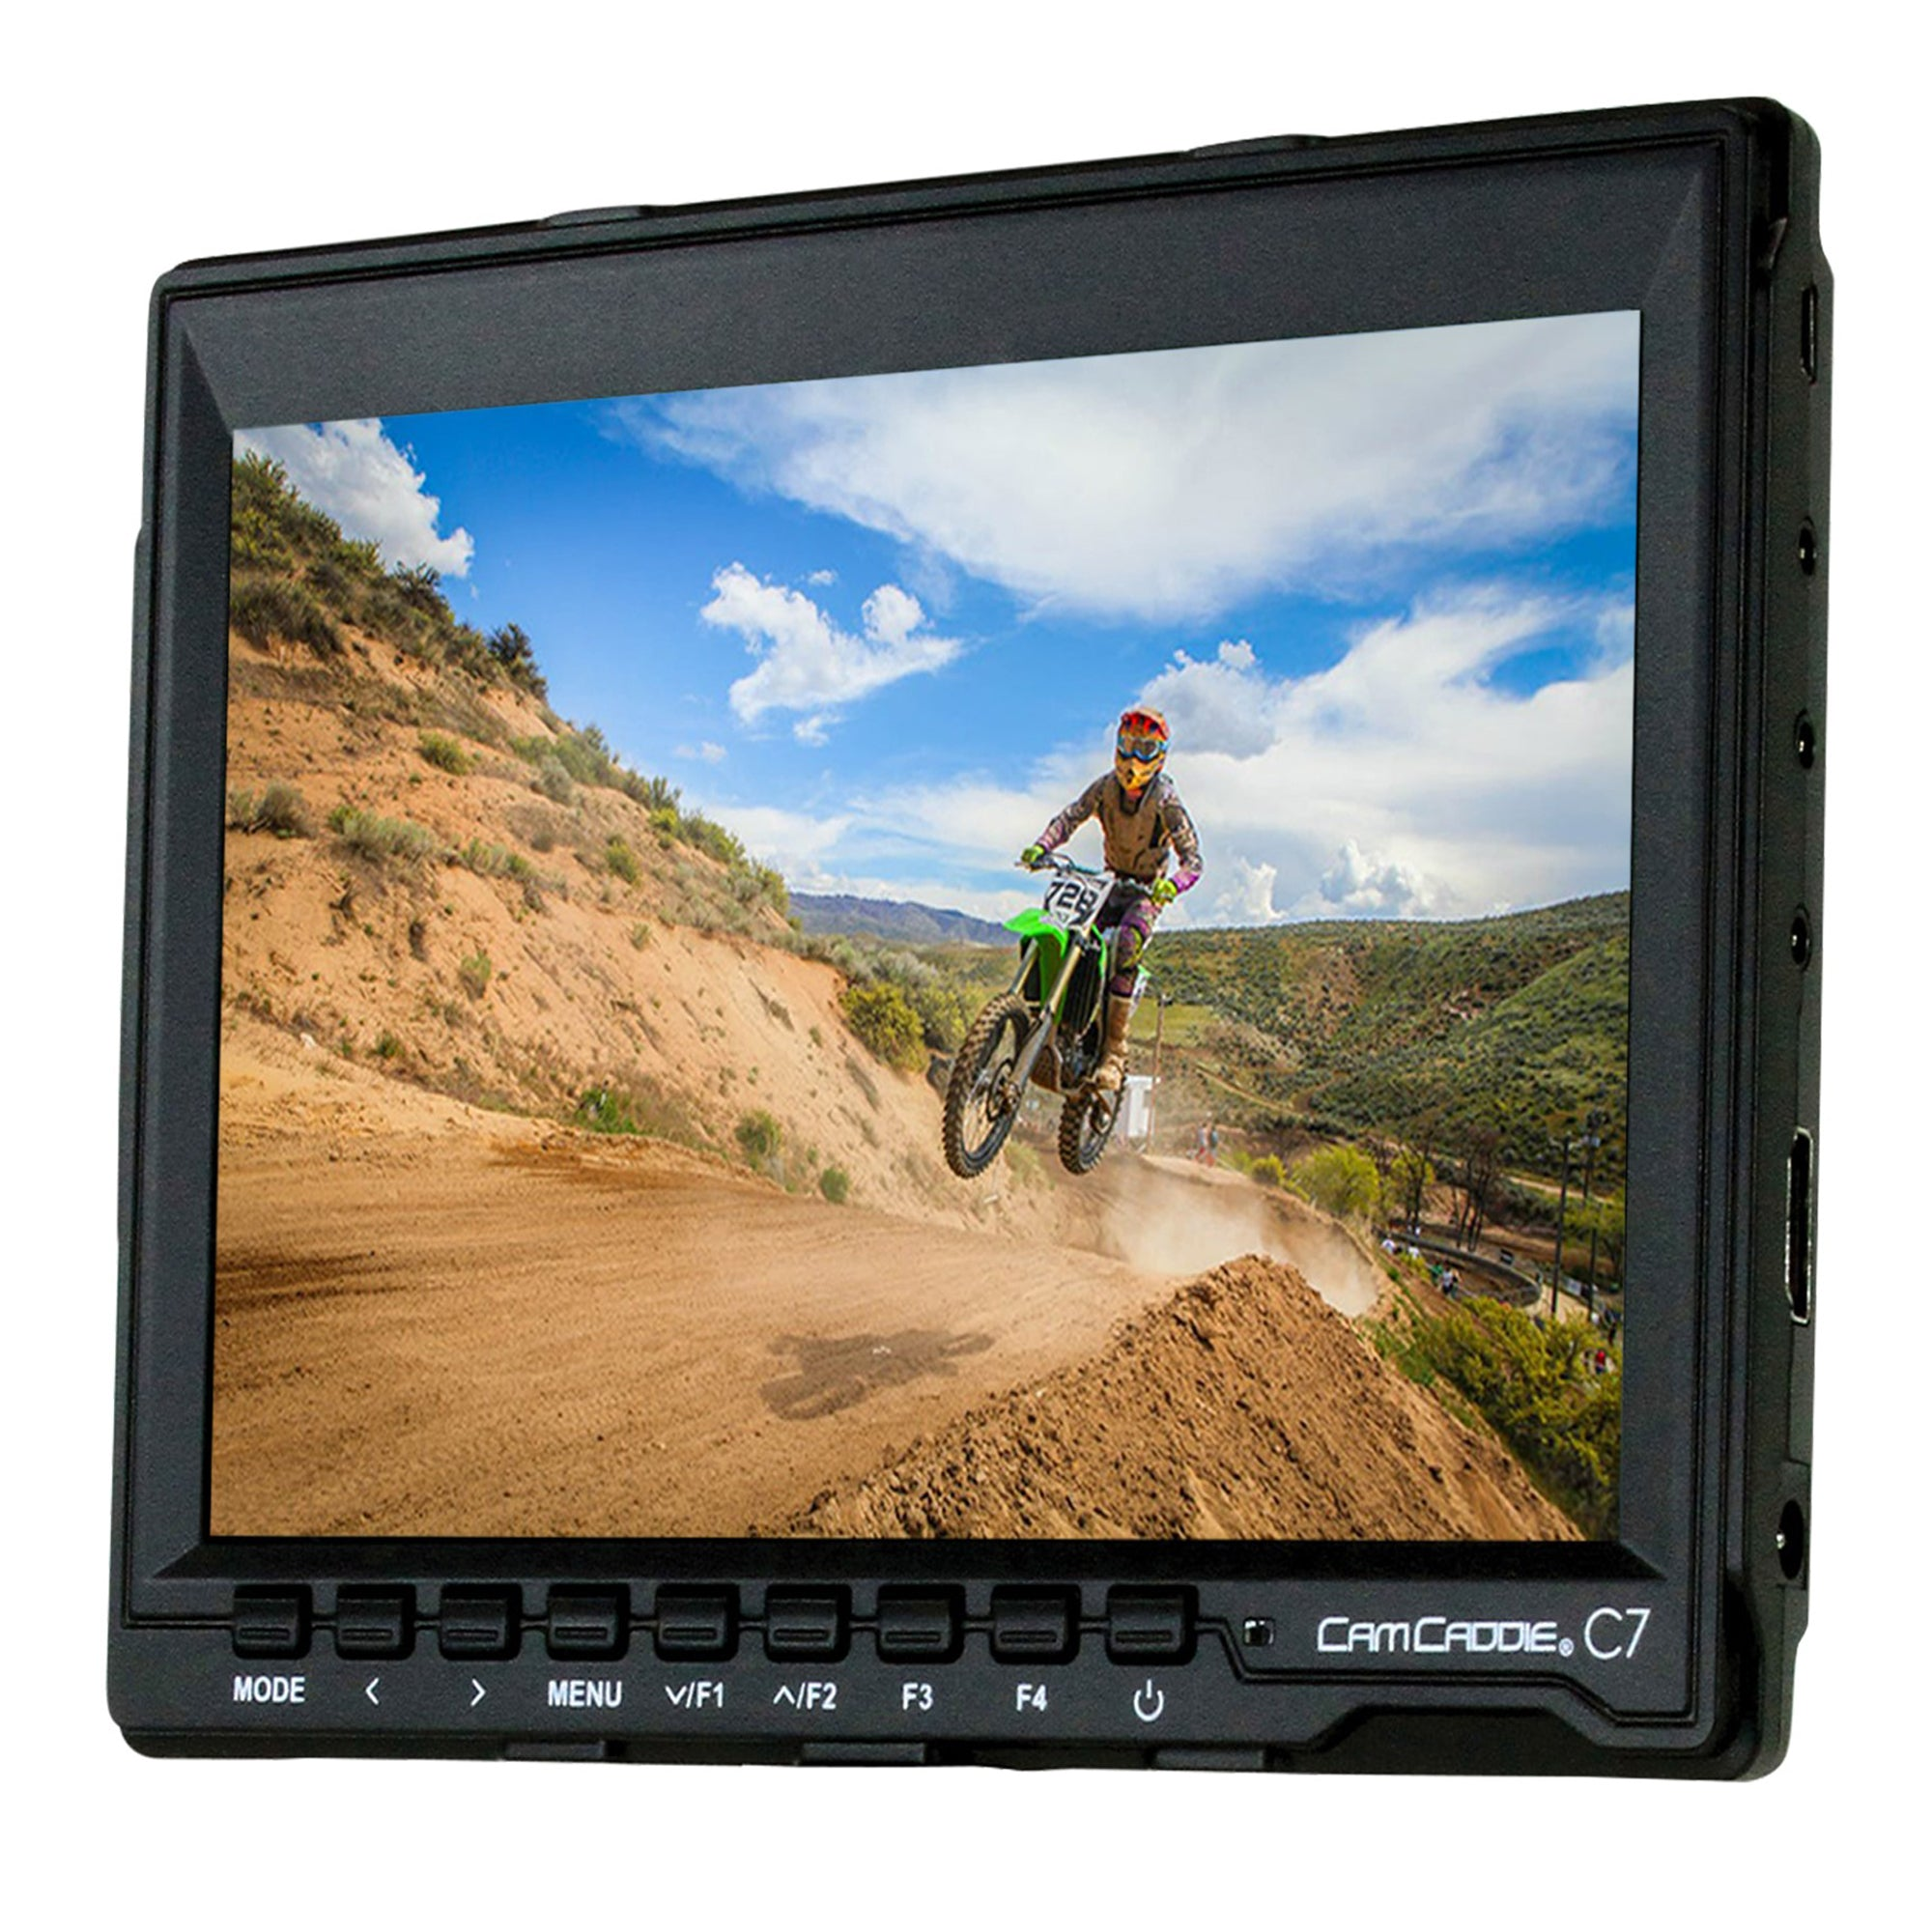 "Cam Caddie C7 7"" 1280 x 800 HD IPS Field Monitor + Canon LP-E6 Battery Plate + EU Compatible Power Supply - Cam Caddie - The Original Universal Stabilizing Camera Handle"